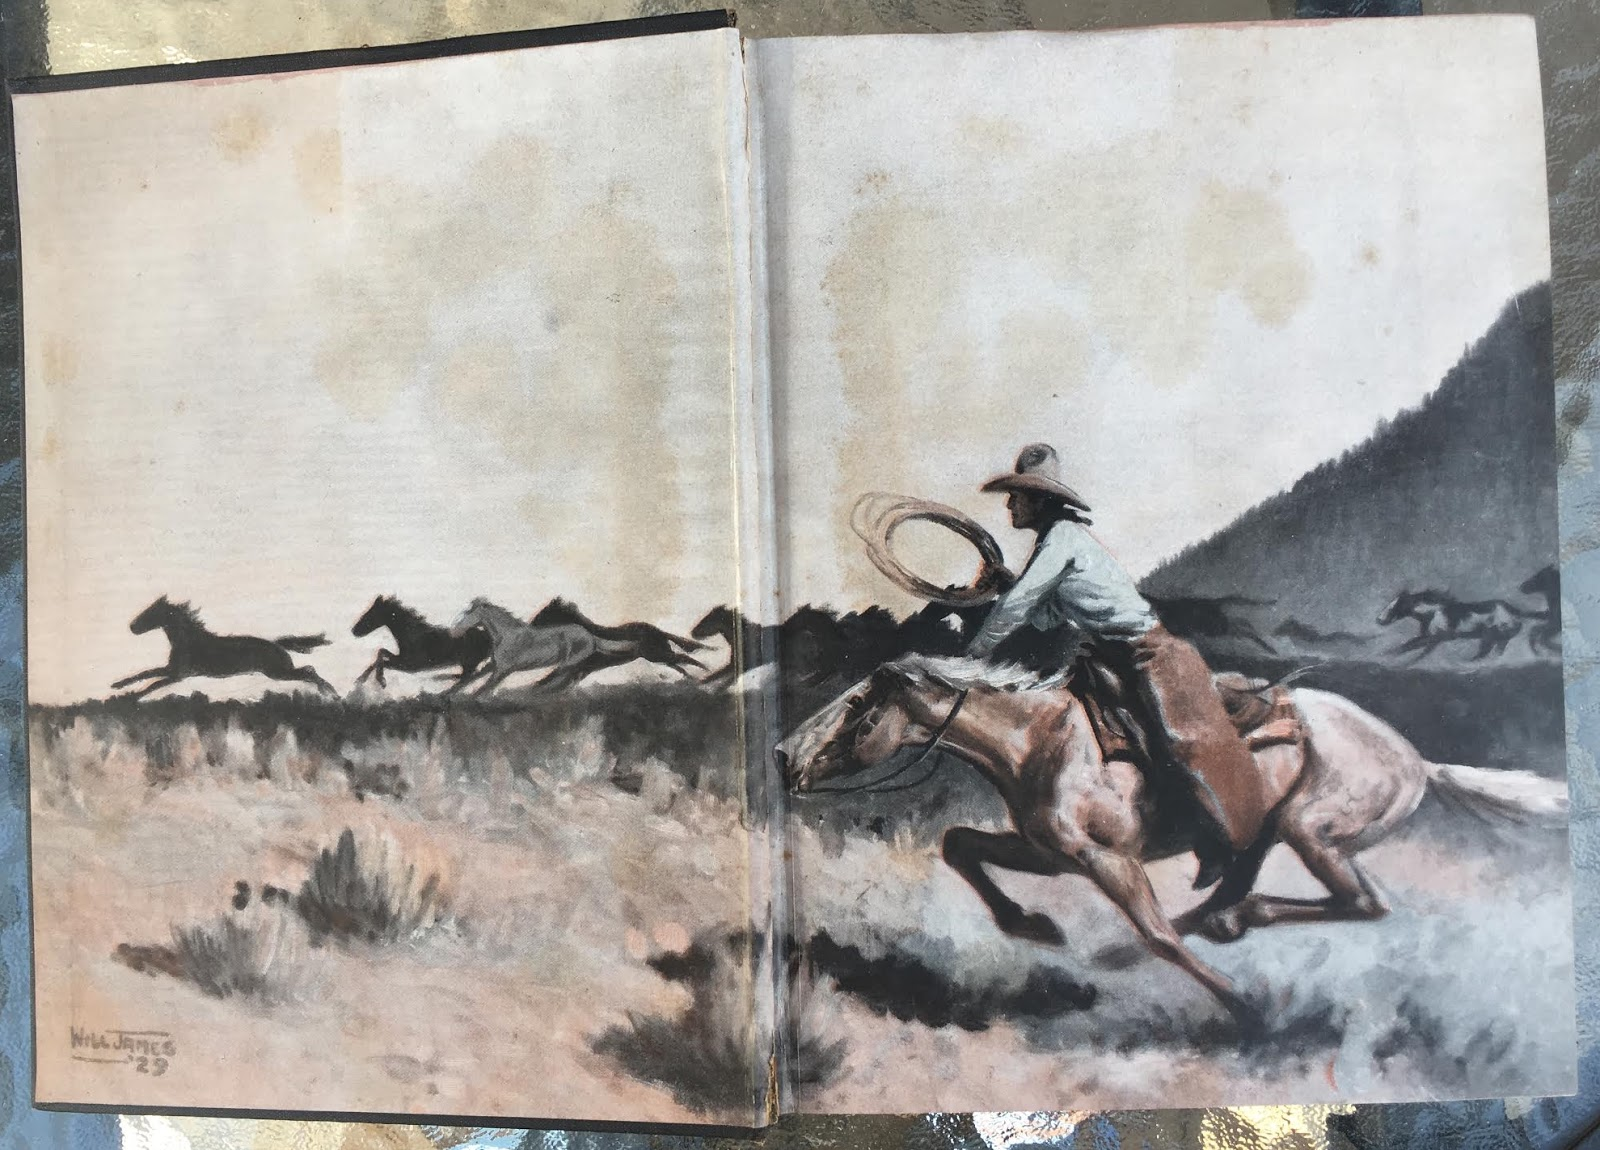 Book Chase: Smoky the Cow Horse (Scribner's Illustrated